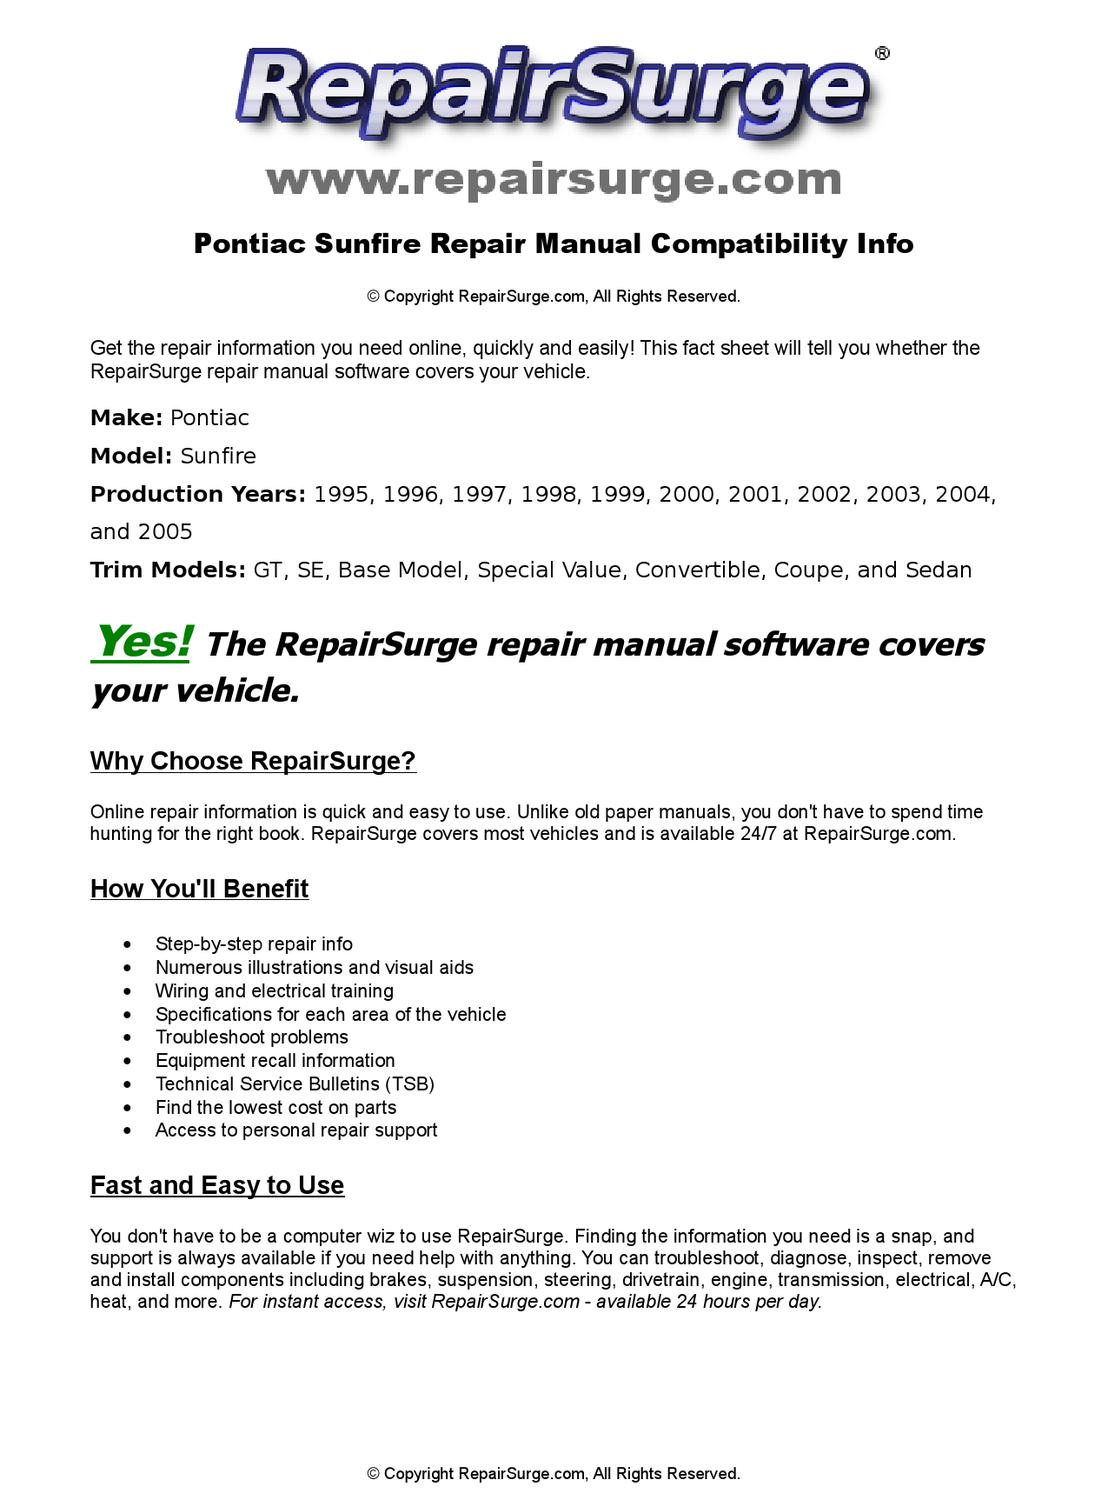 Pontiac Sunfire Online Repair Manual For 1995, 1996, 1997, 1998, 1999,  2000, 2001, 2002, 2003, 2004, by RepairSurge - issuu